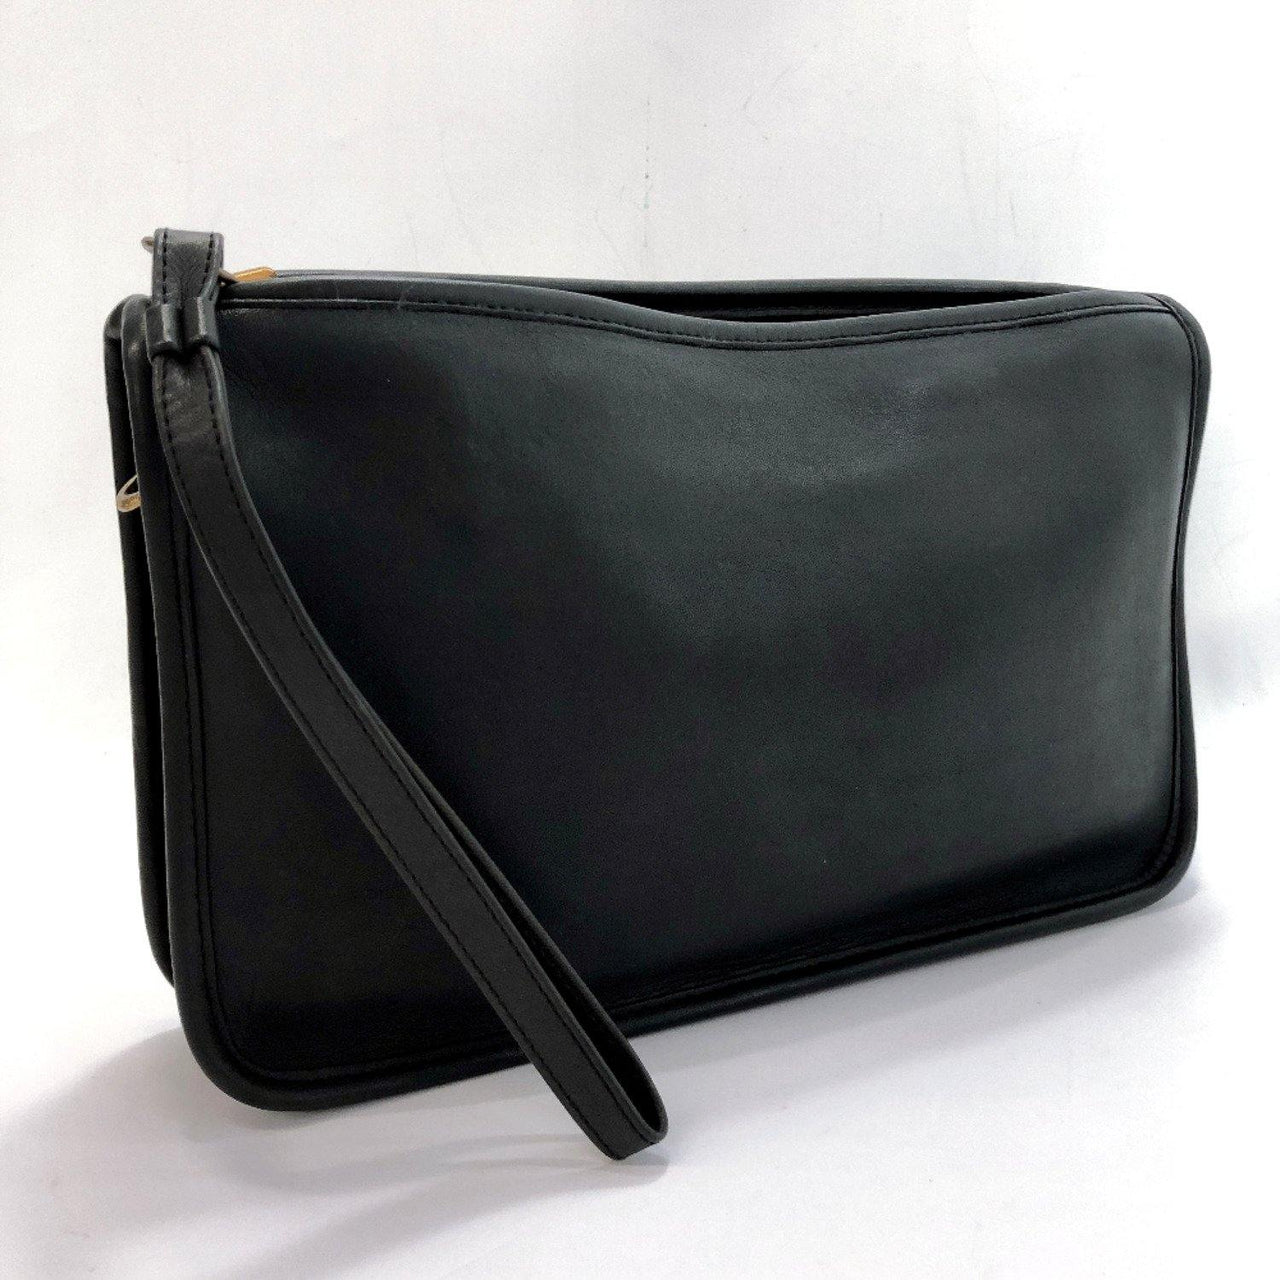 COACH Clutch bag Old coach leather Navy unisex Used - JP-BRANDS.com